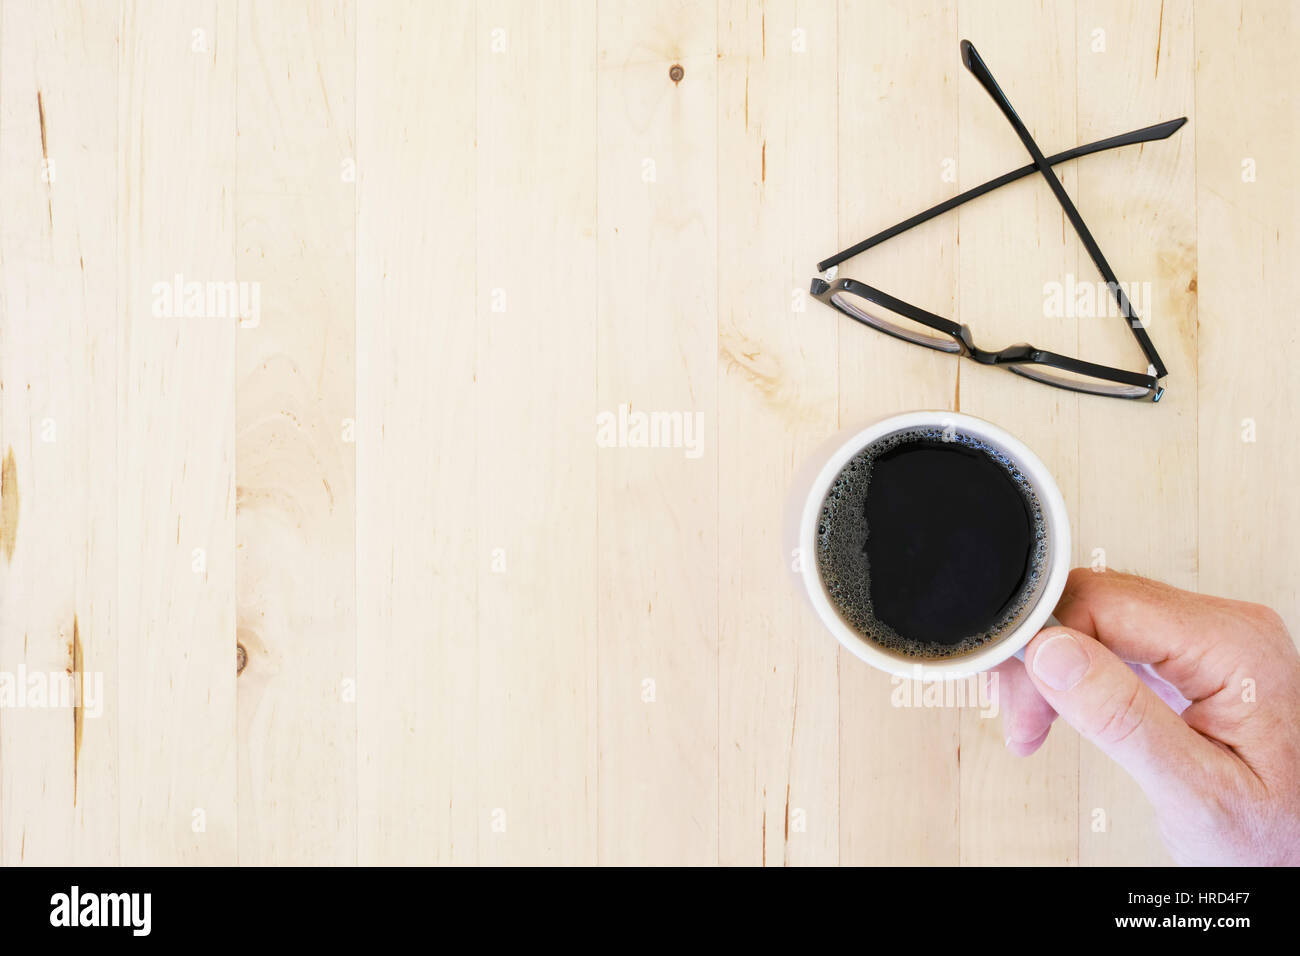 Hand reaching for coffee mug, eyeglasses on wooden tabletop. Top view. - Stock Image